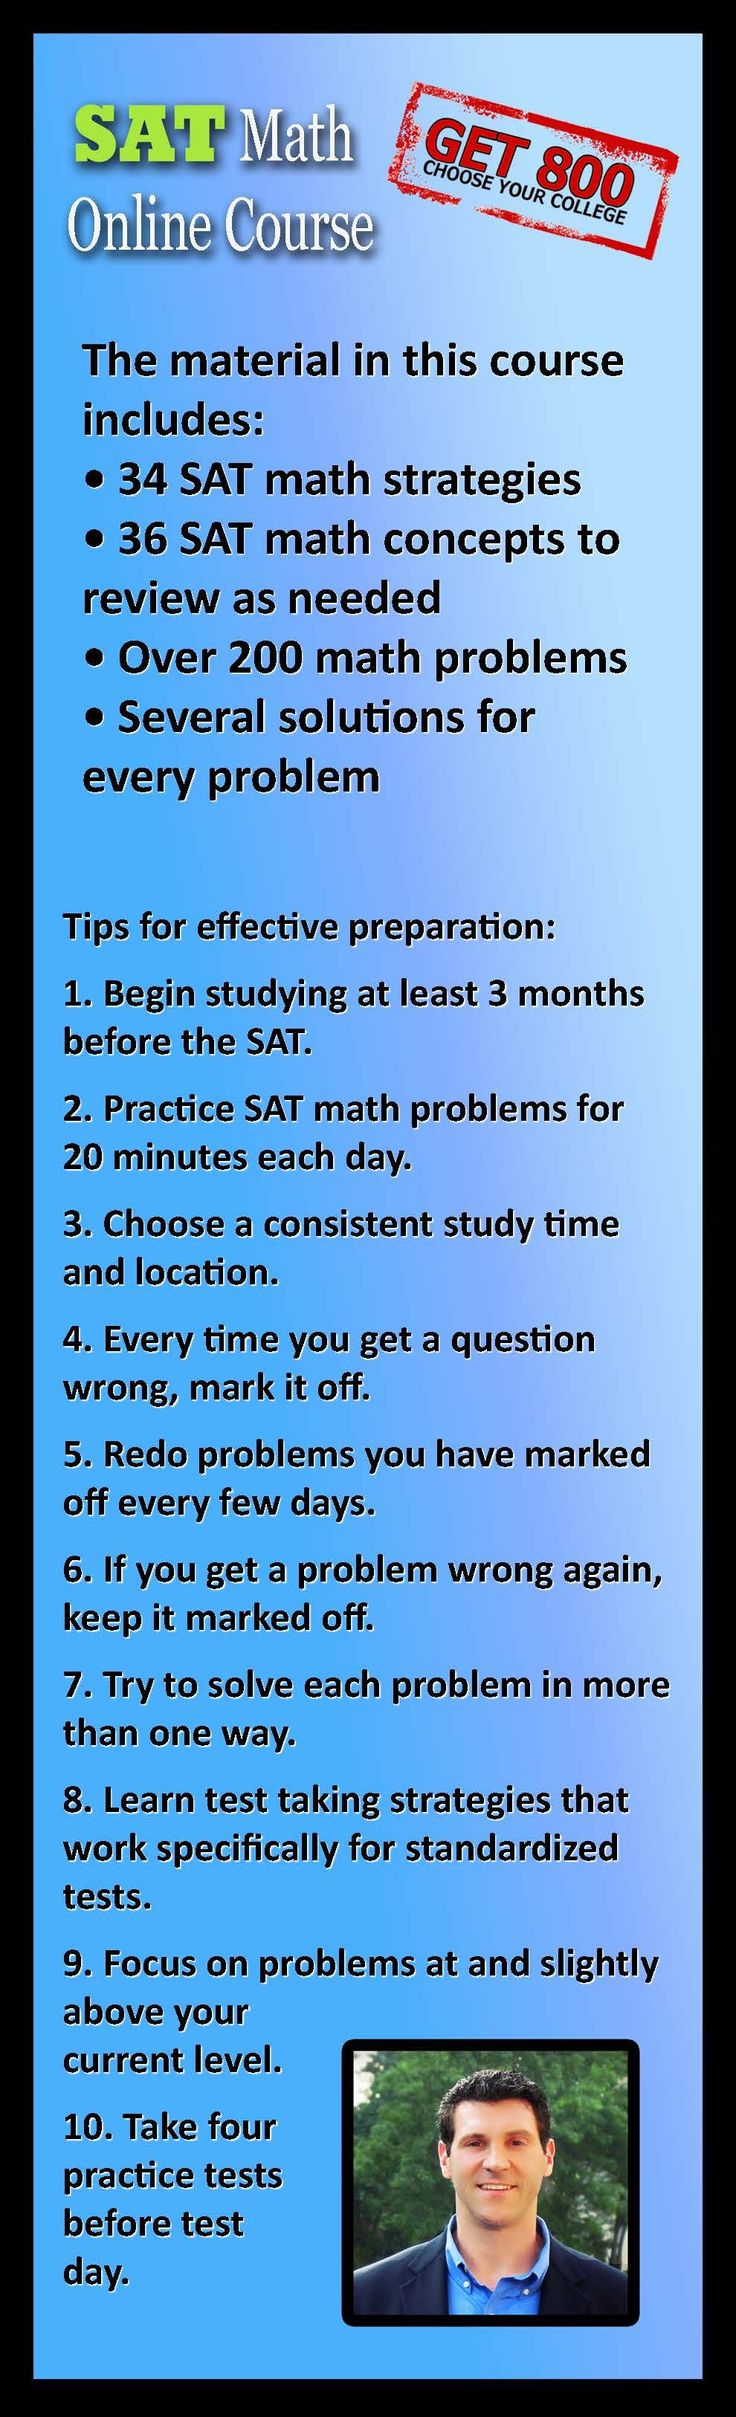 The Get 800 SAT Math Prep Online Course. Created by Dr. Steve Warner: http://satprepget800.com/sat-math-course/